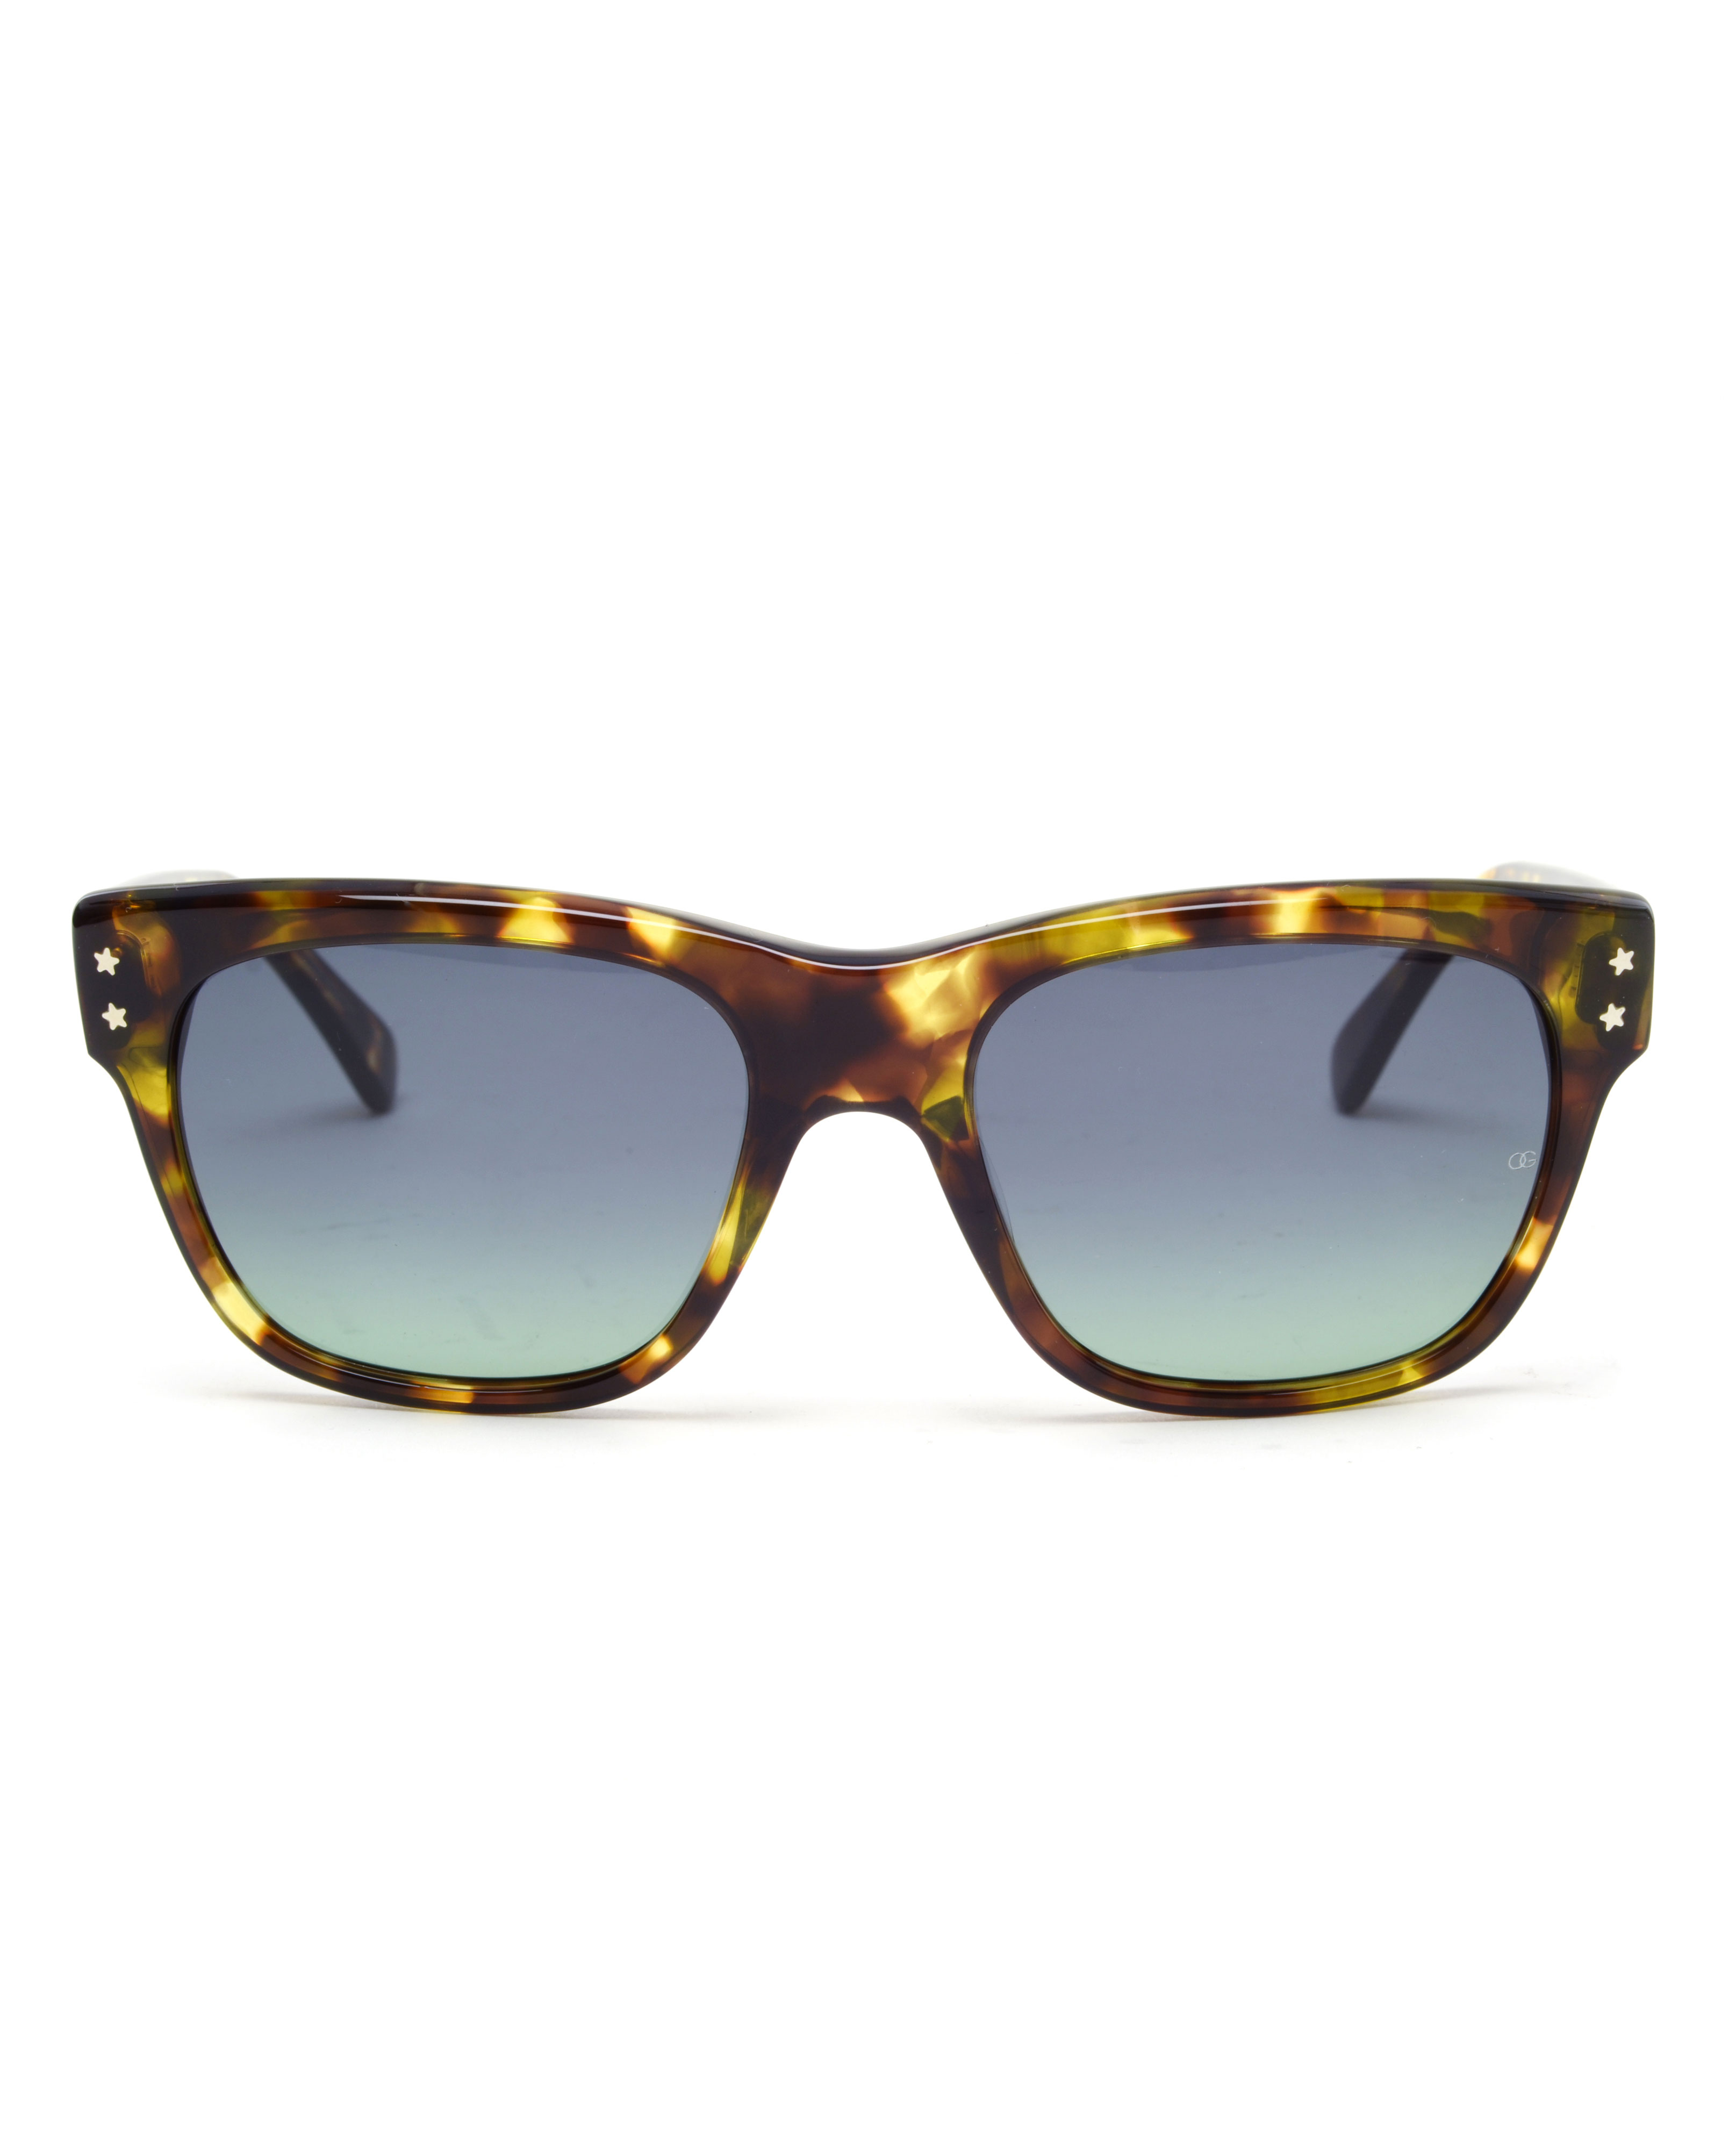 e4be445c1c58 Oliver Goldsmith Lord Split Acetate Sunglasses in Brown - Lyst